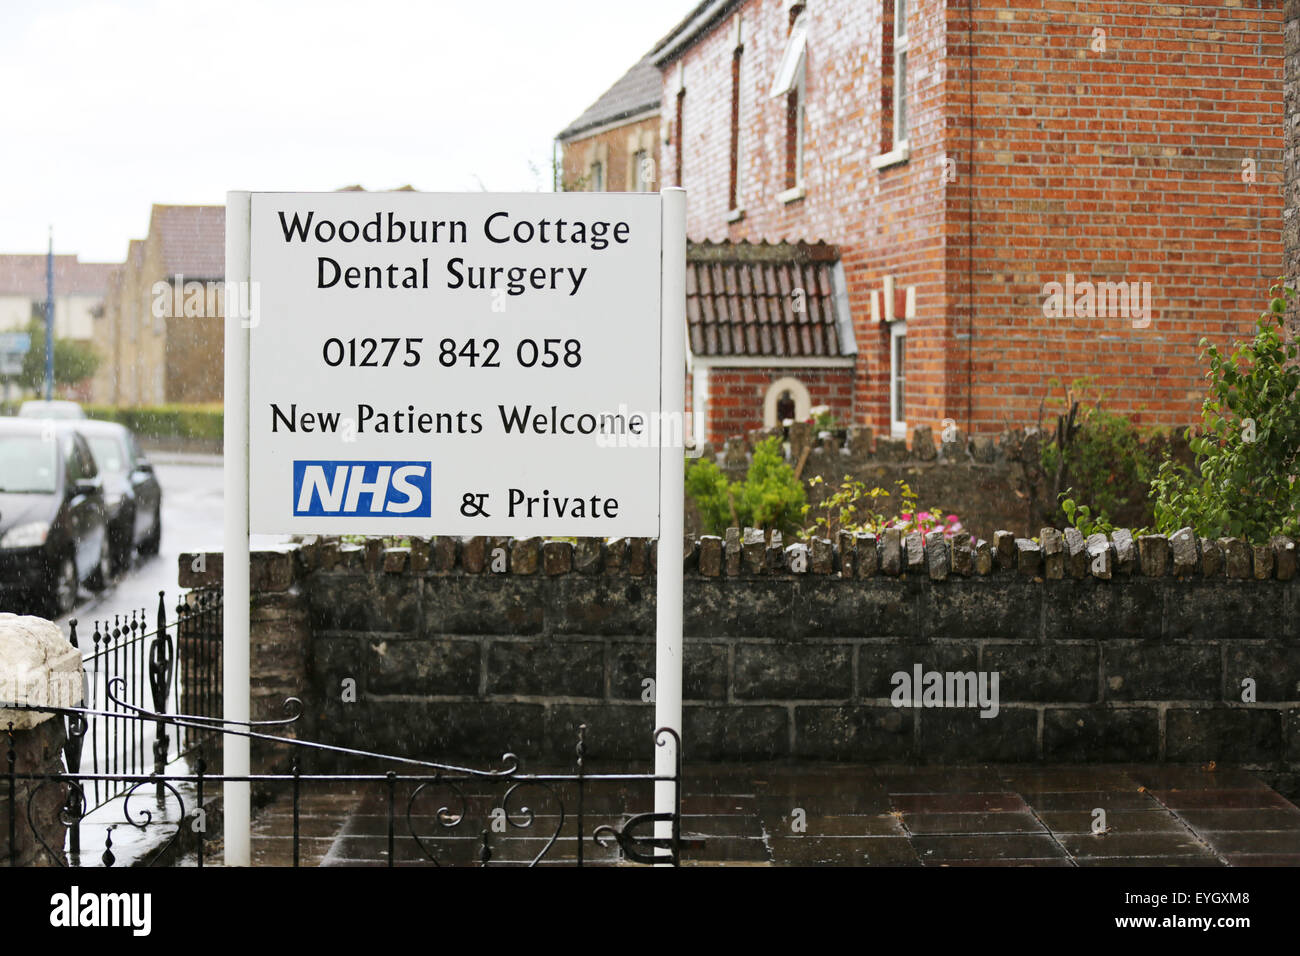 An English NHS/Private Dentist sign outside a Dentist Surgery on a town High Street. - Stock Image